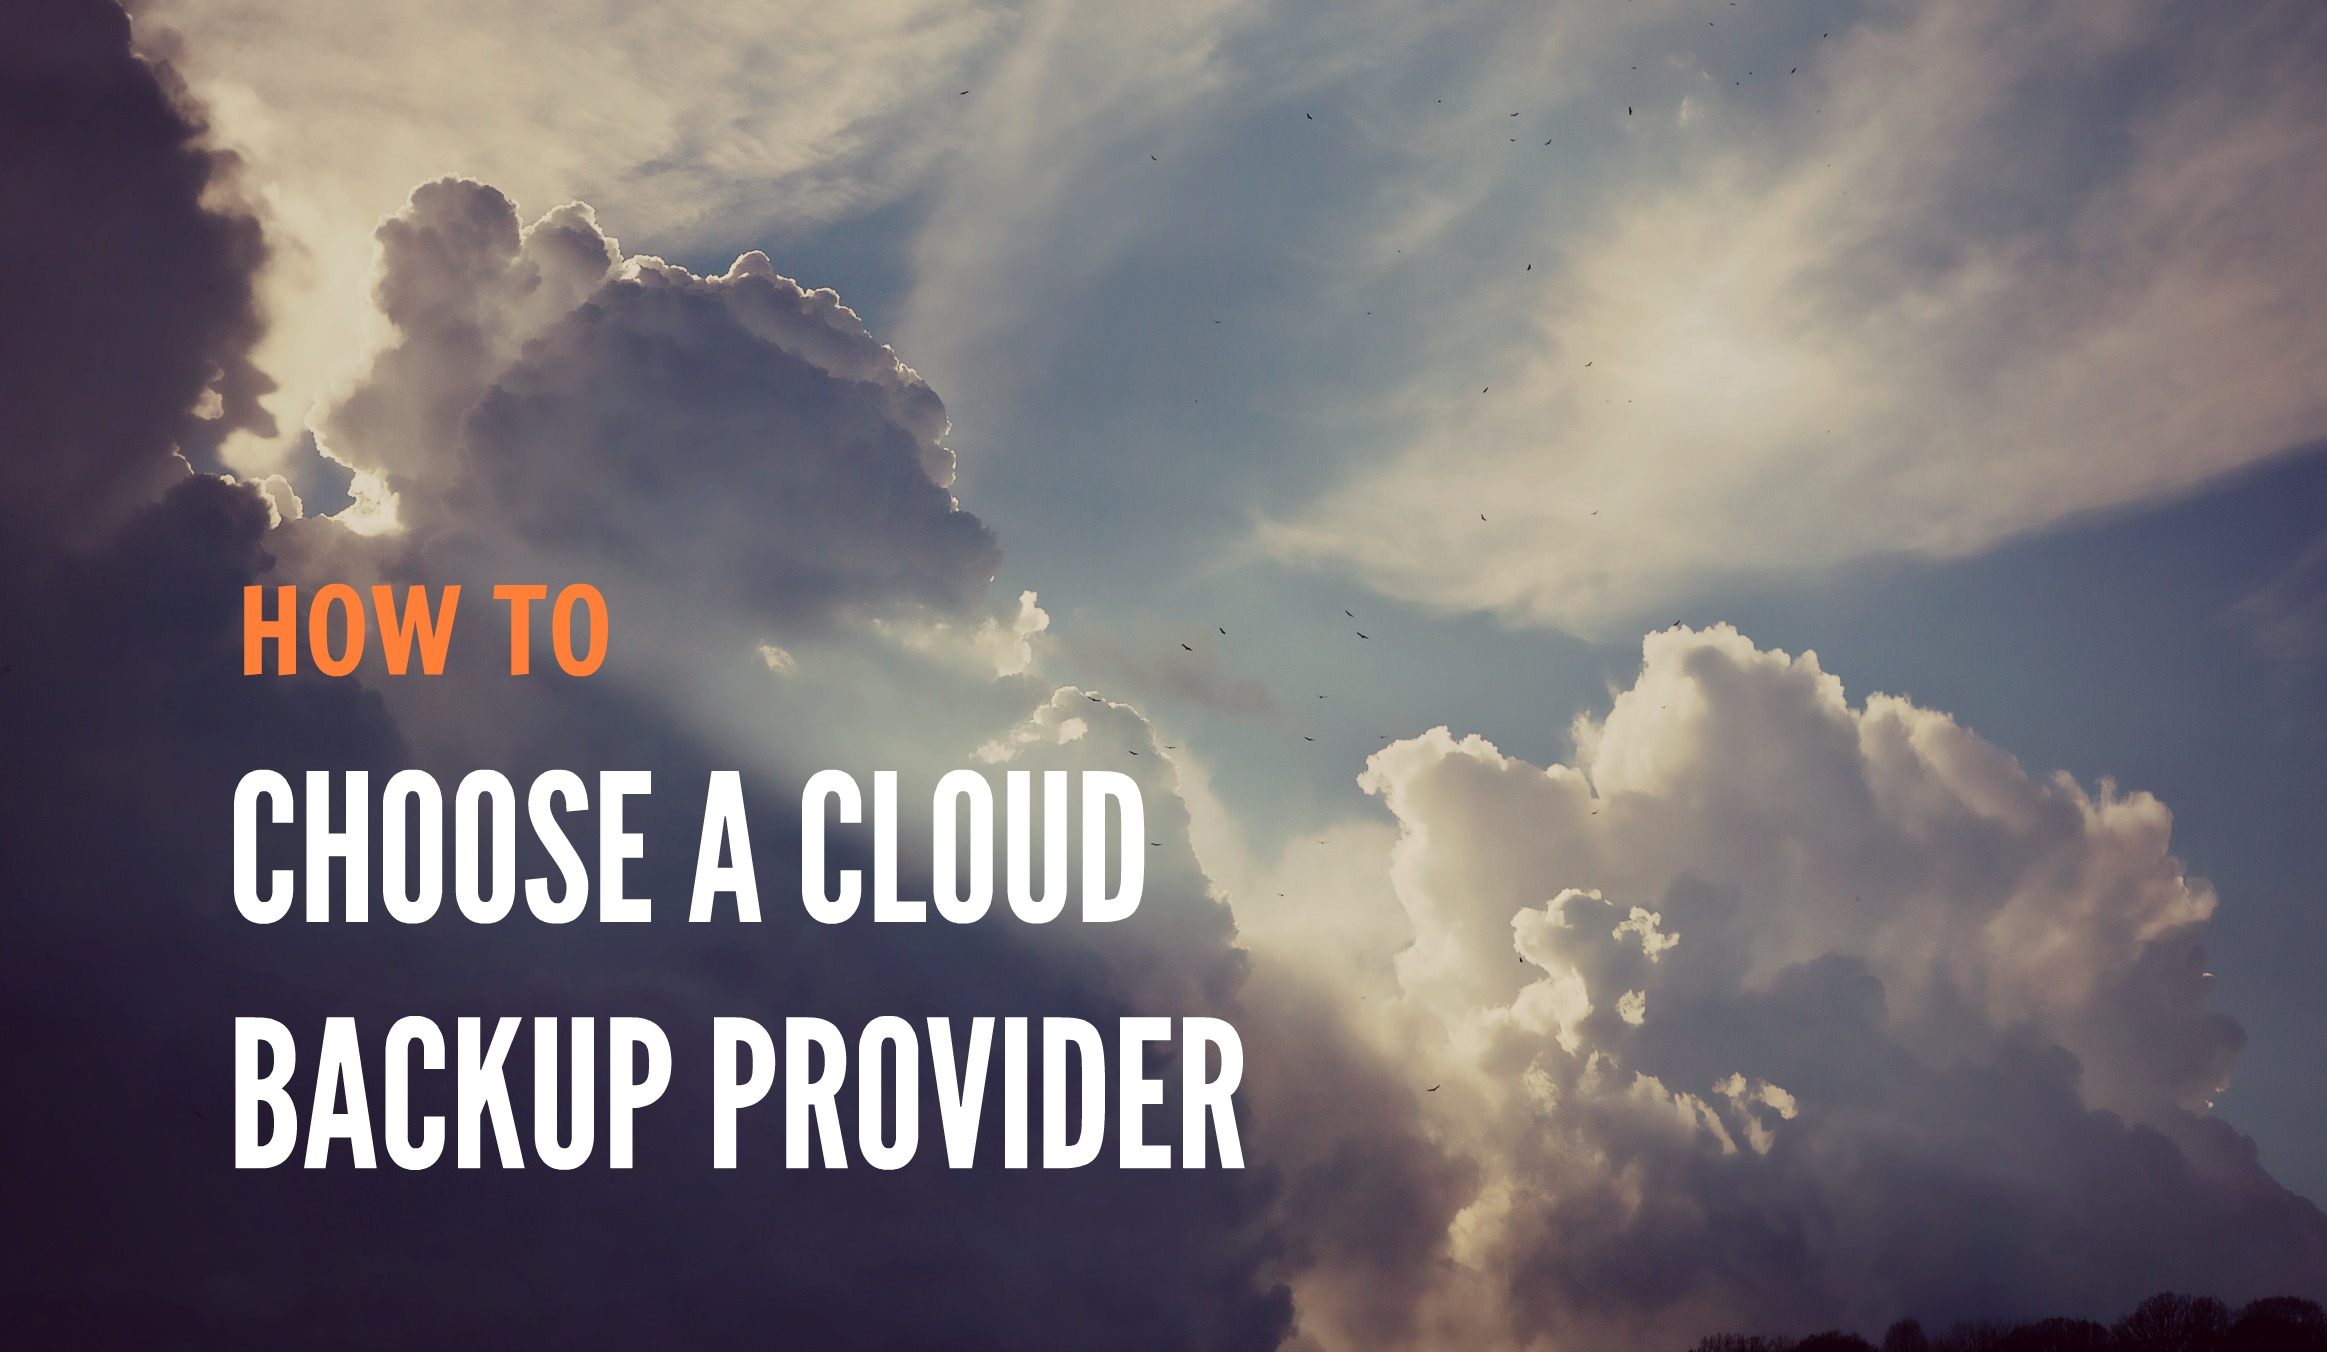 How to choose a cloud backup provider